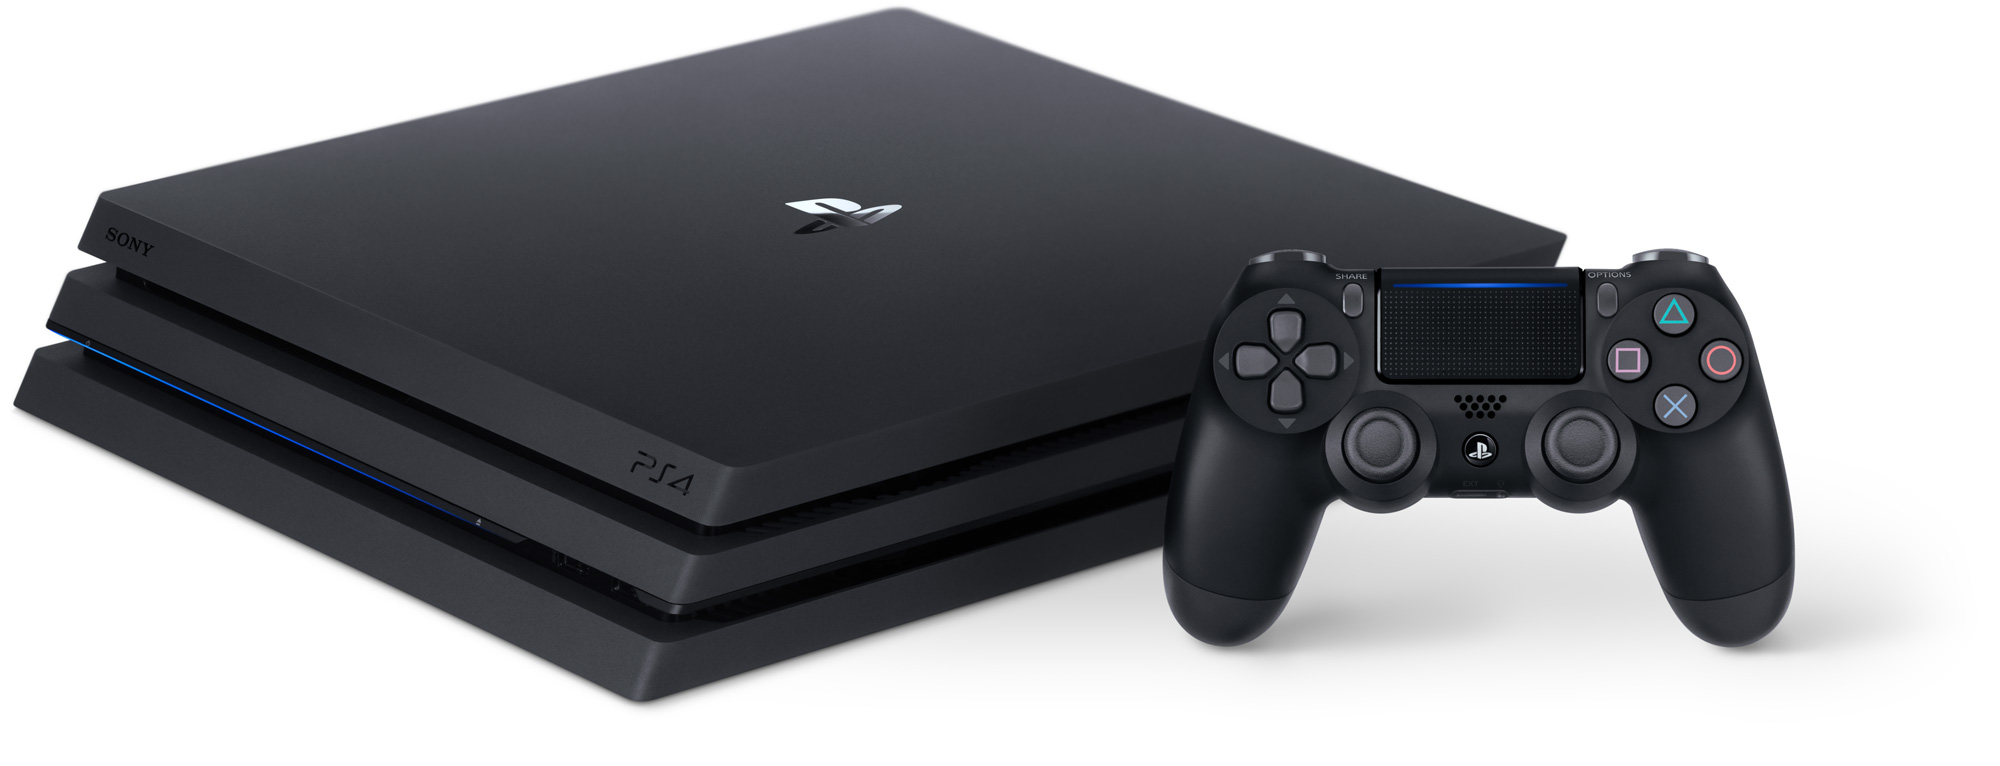 Image result for playstation pro